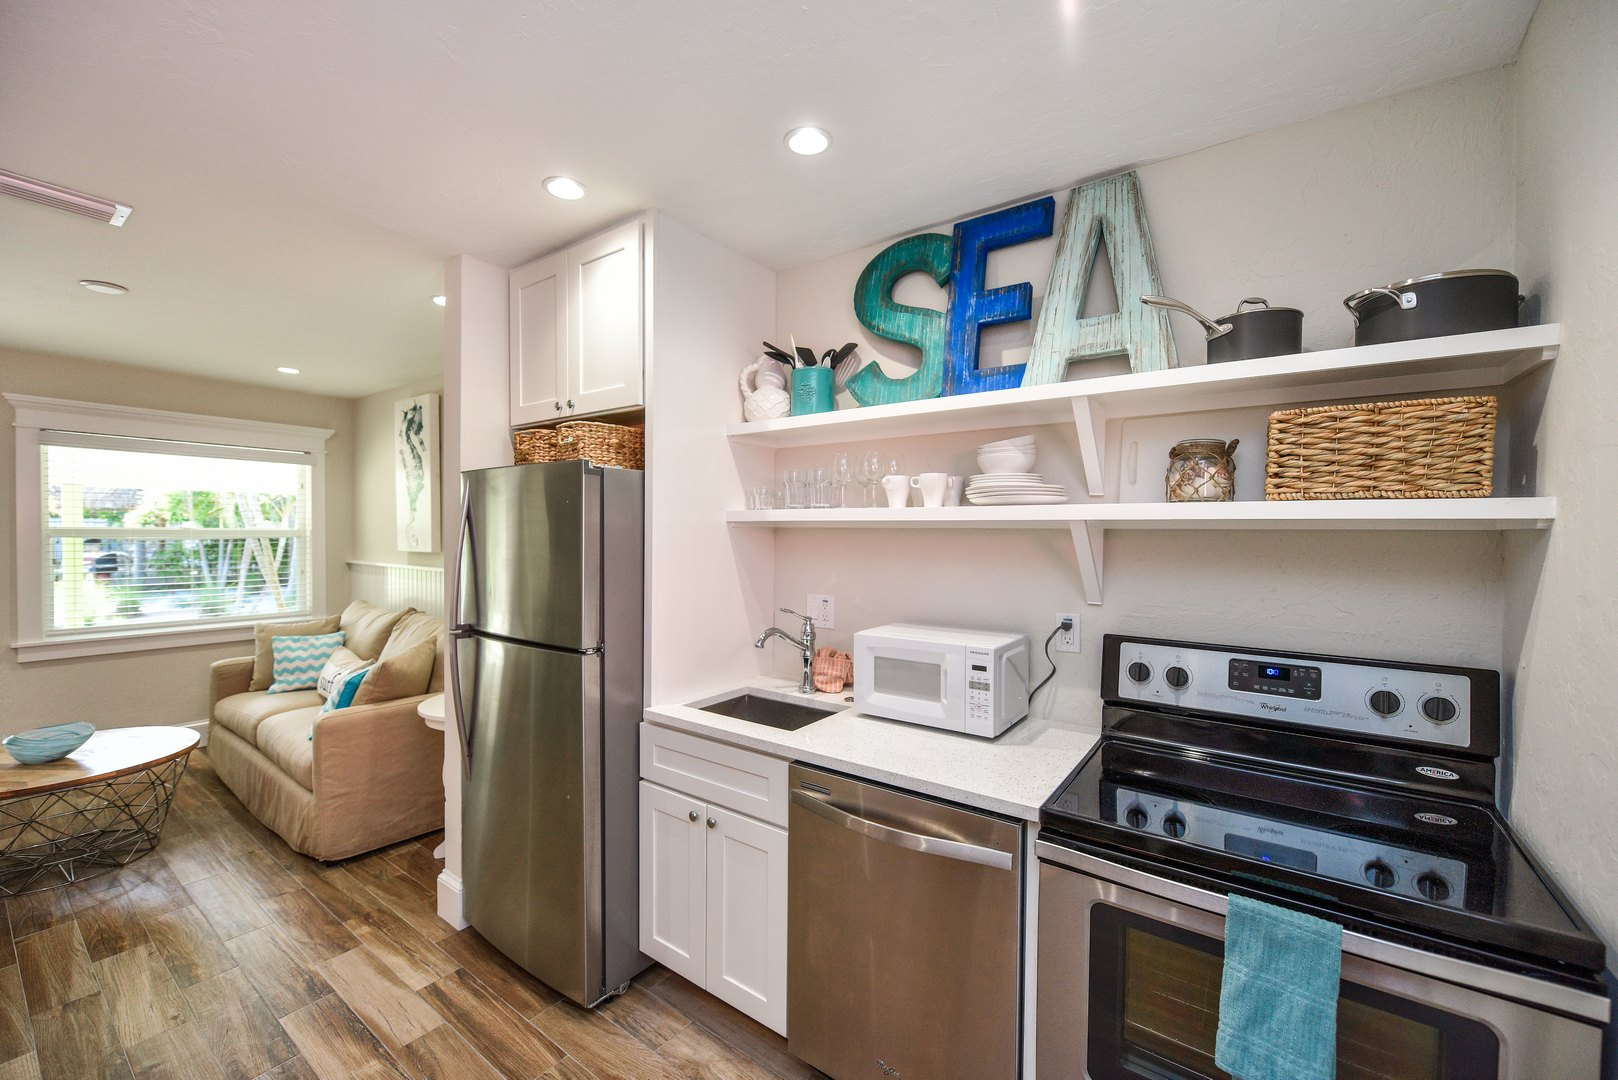 Kitchen Living and Dining in One Space